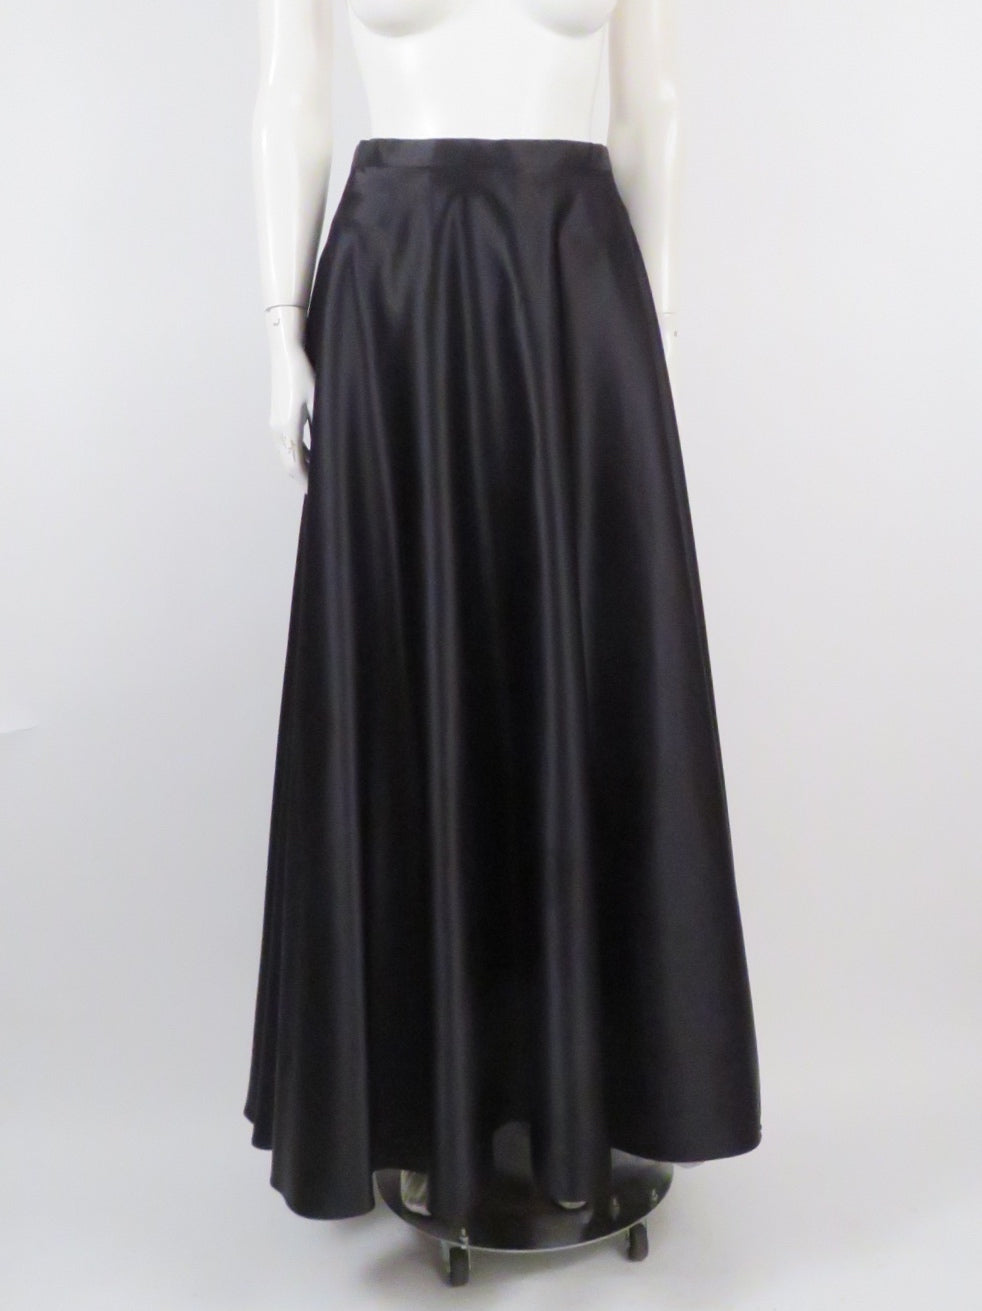 vintage faviana black maxi skirt features lining with crinoline bottom, hidden back zipper and a-line silhouette.